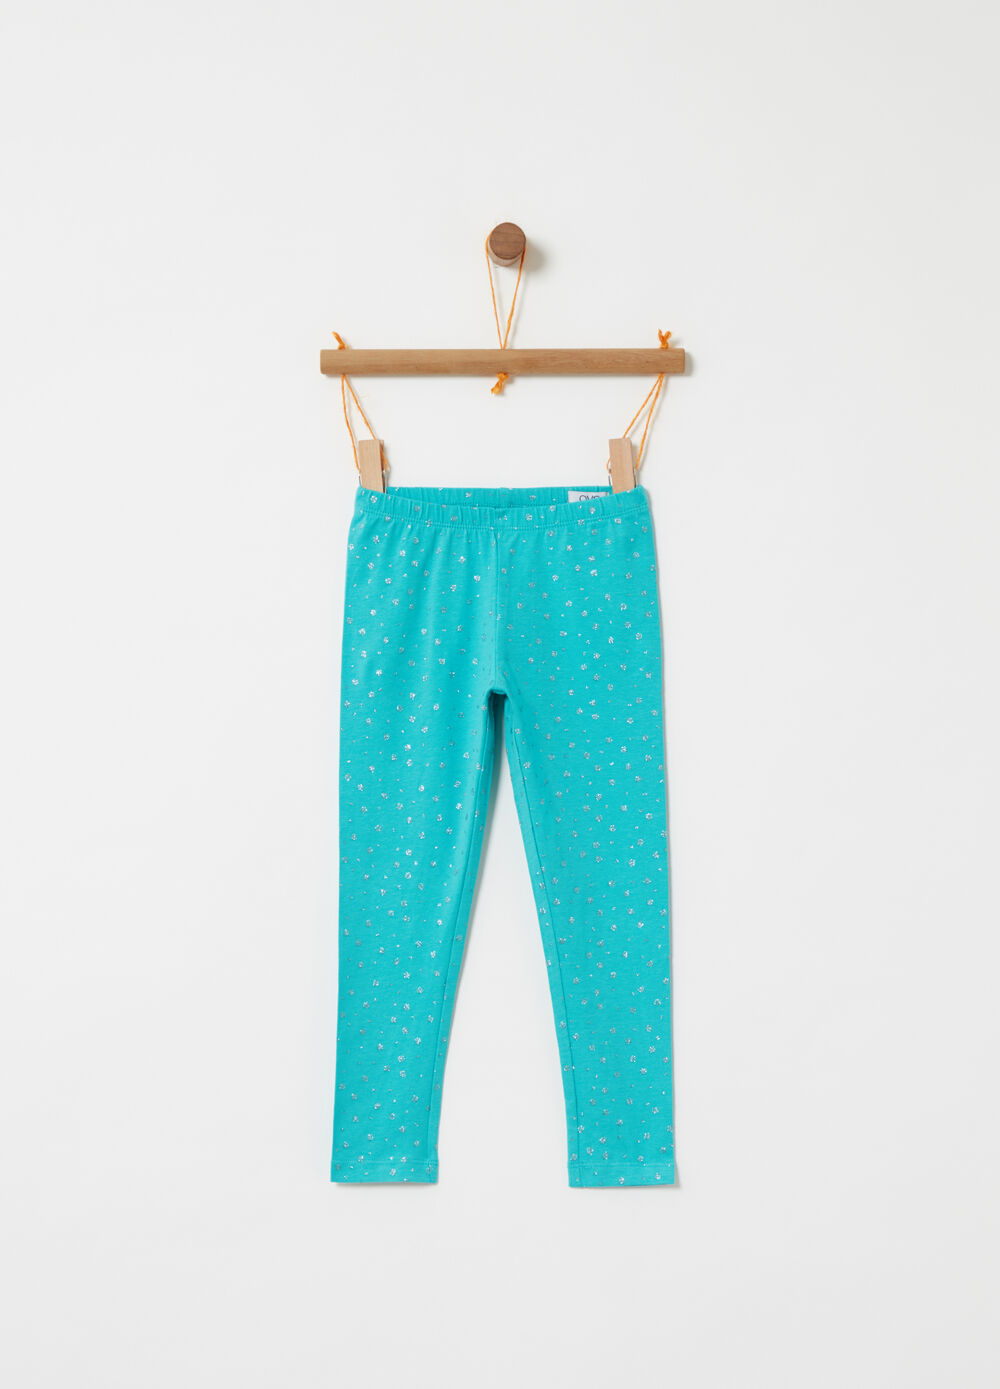 Jersey leggings with glitter polka dot pattern